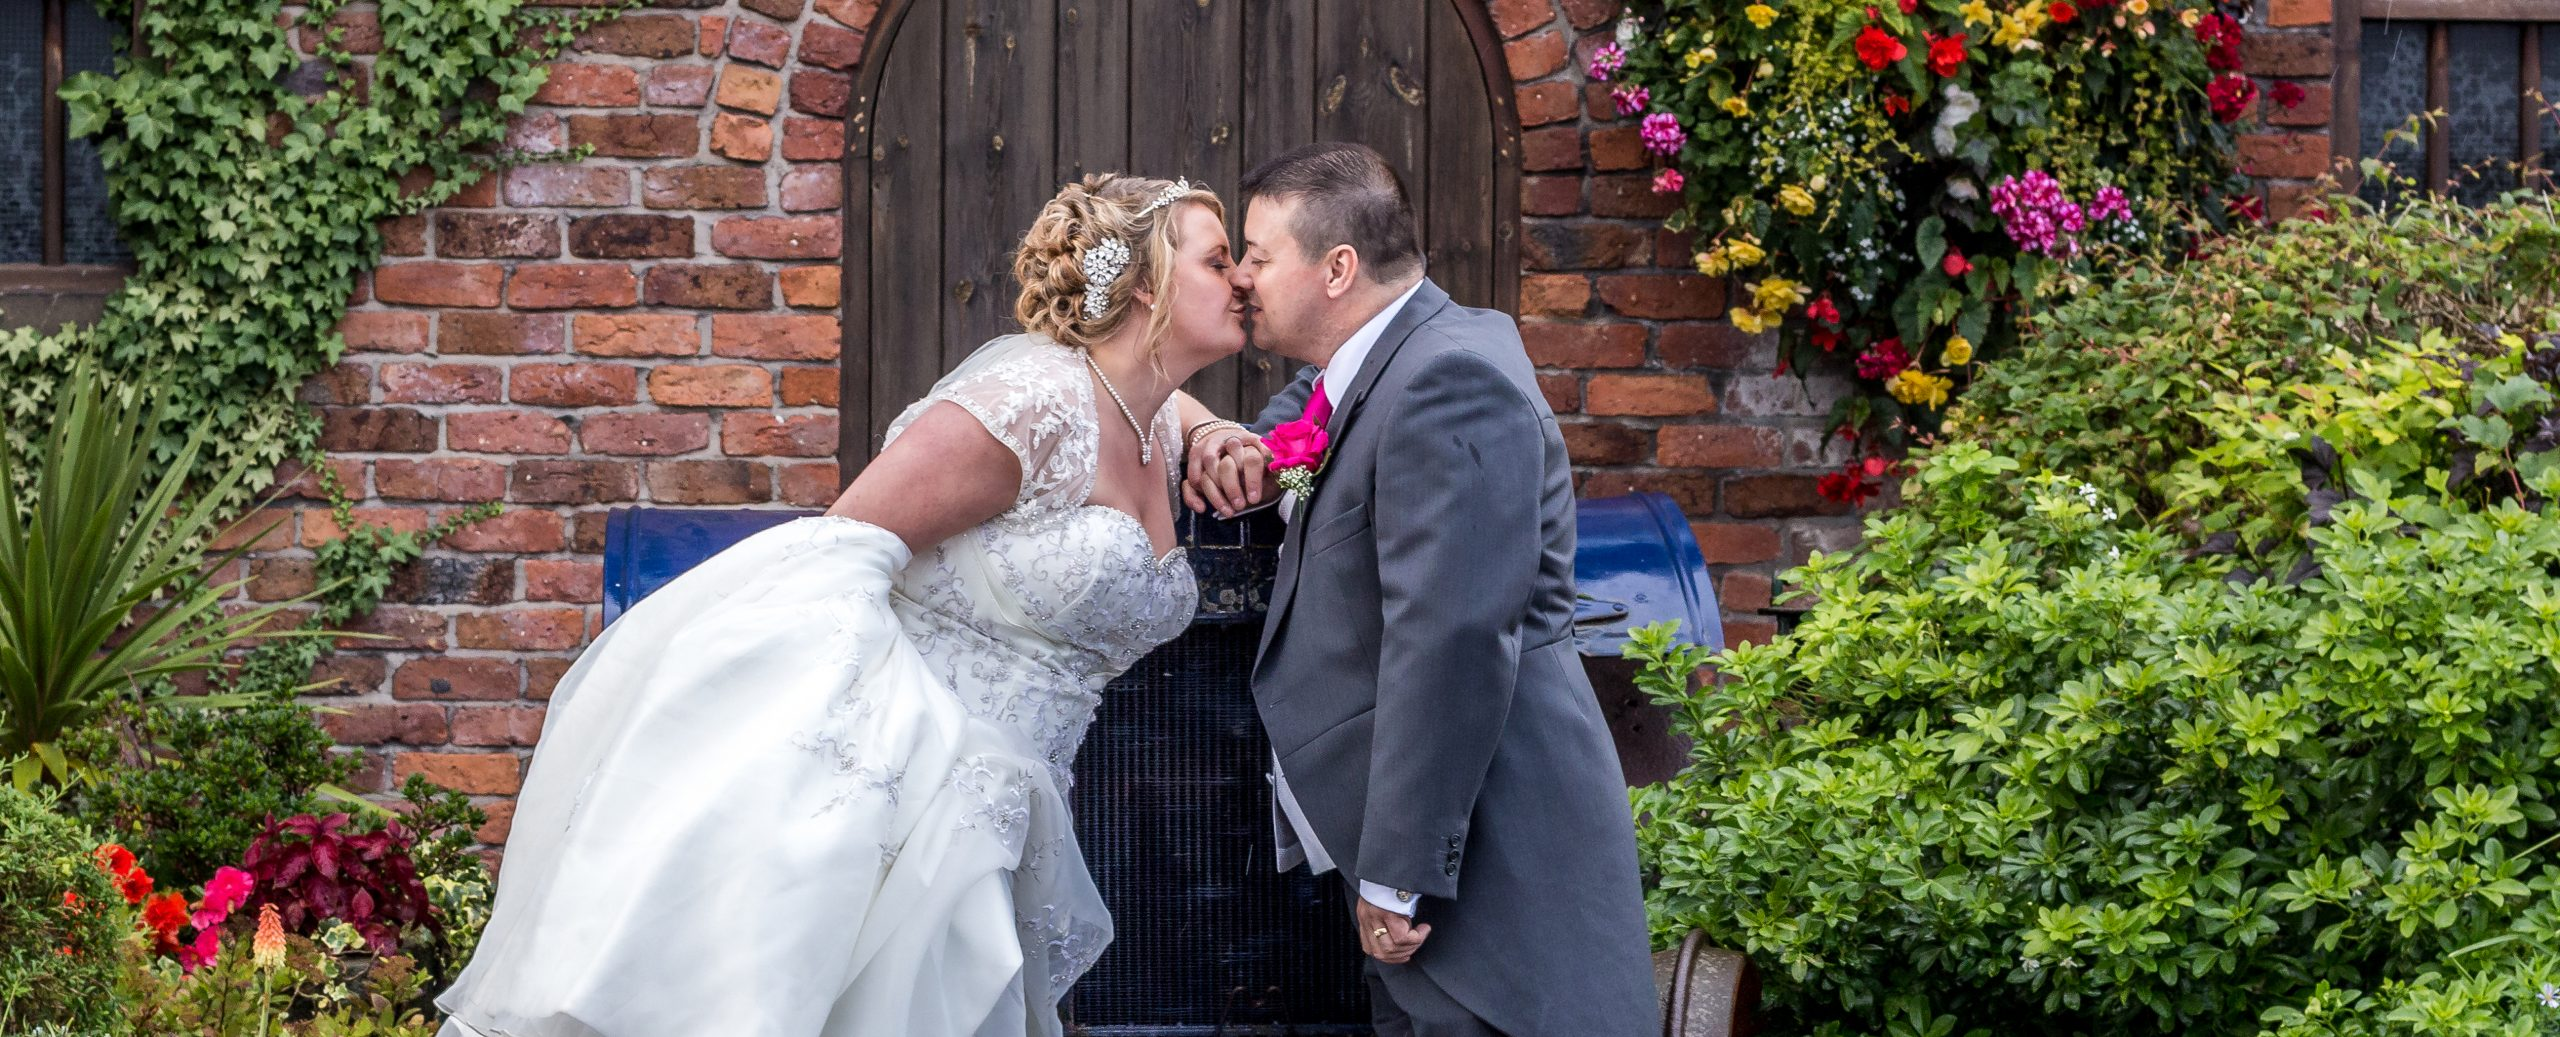 wedding films by marlyn pictures